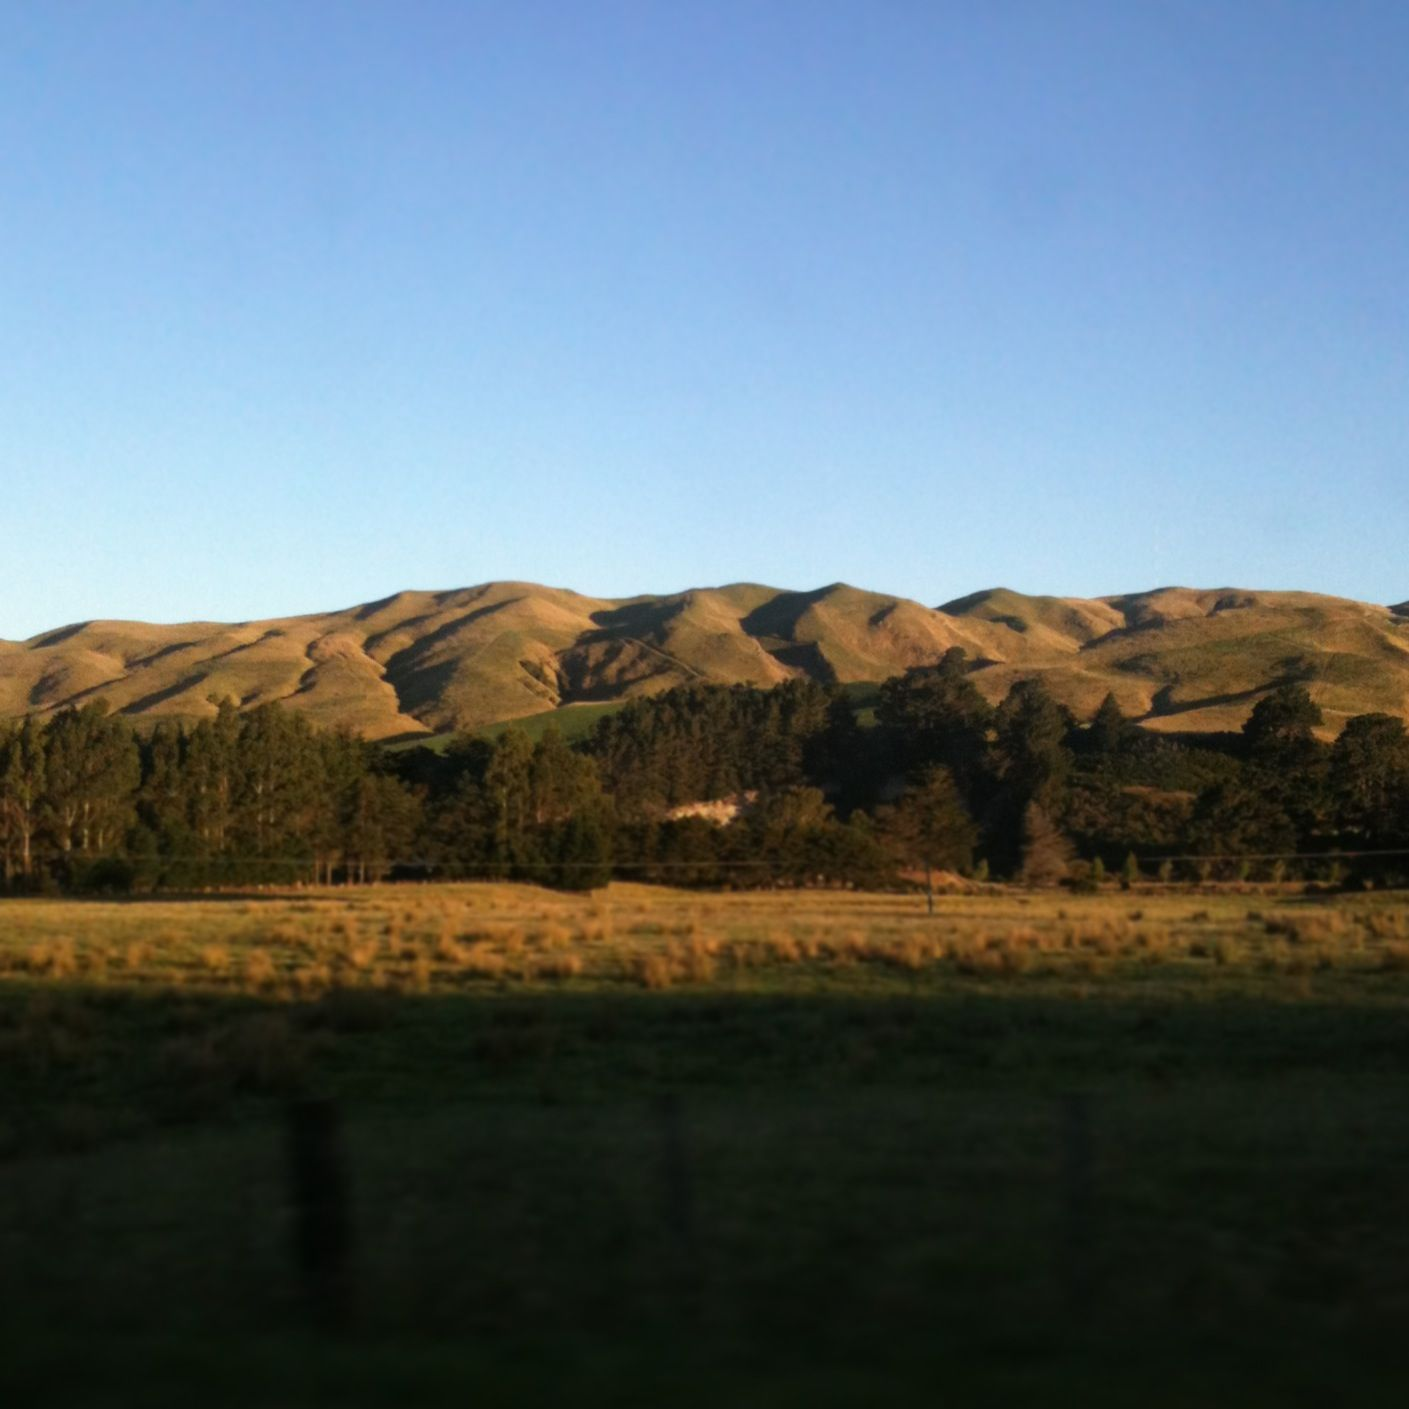 Central Hawkes Bay landscape, New Zealand photo Paper